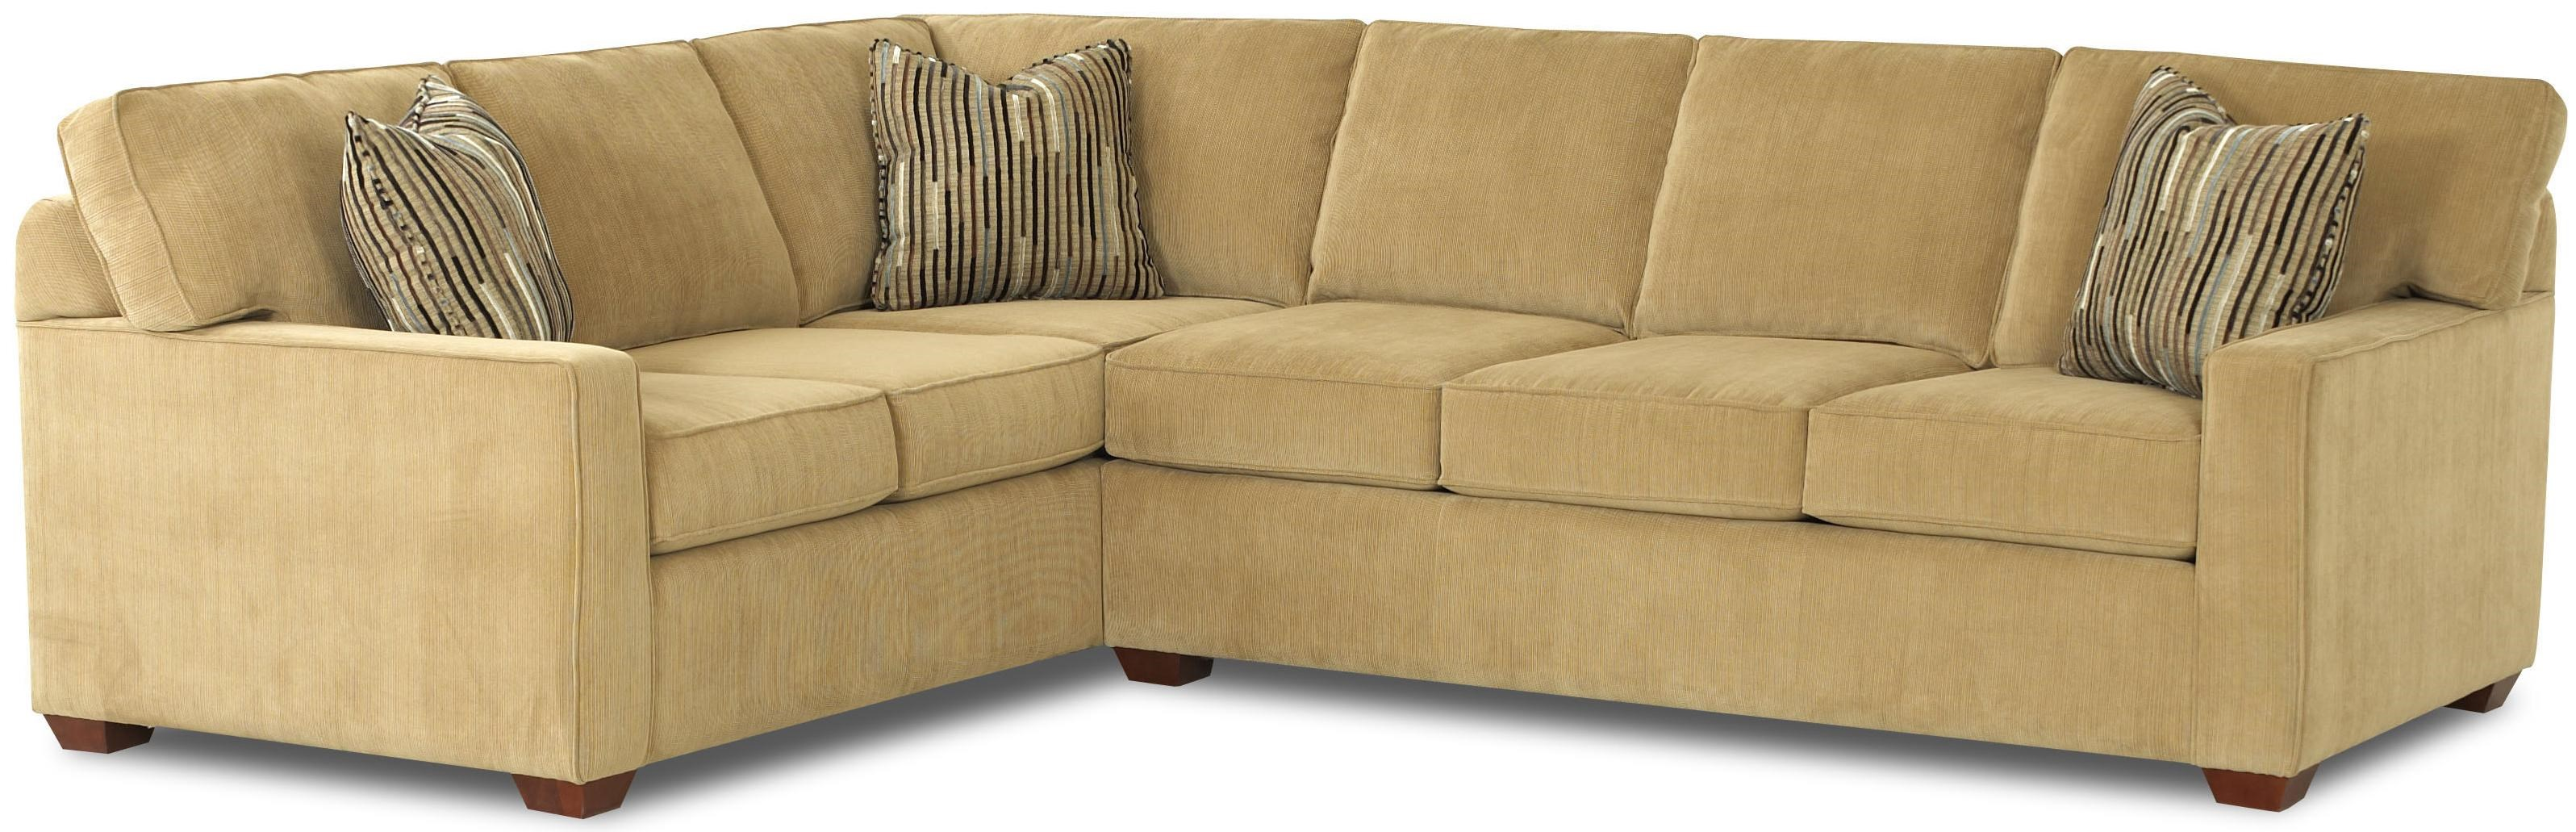 Sofa Bed For Sale In Quezon City: Klaussner Selection L-Shaped Contemporary Sectional